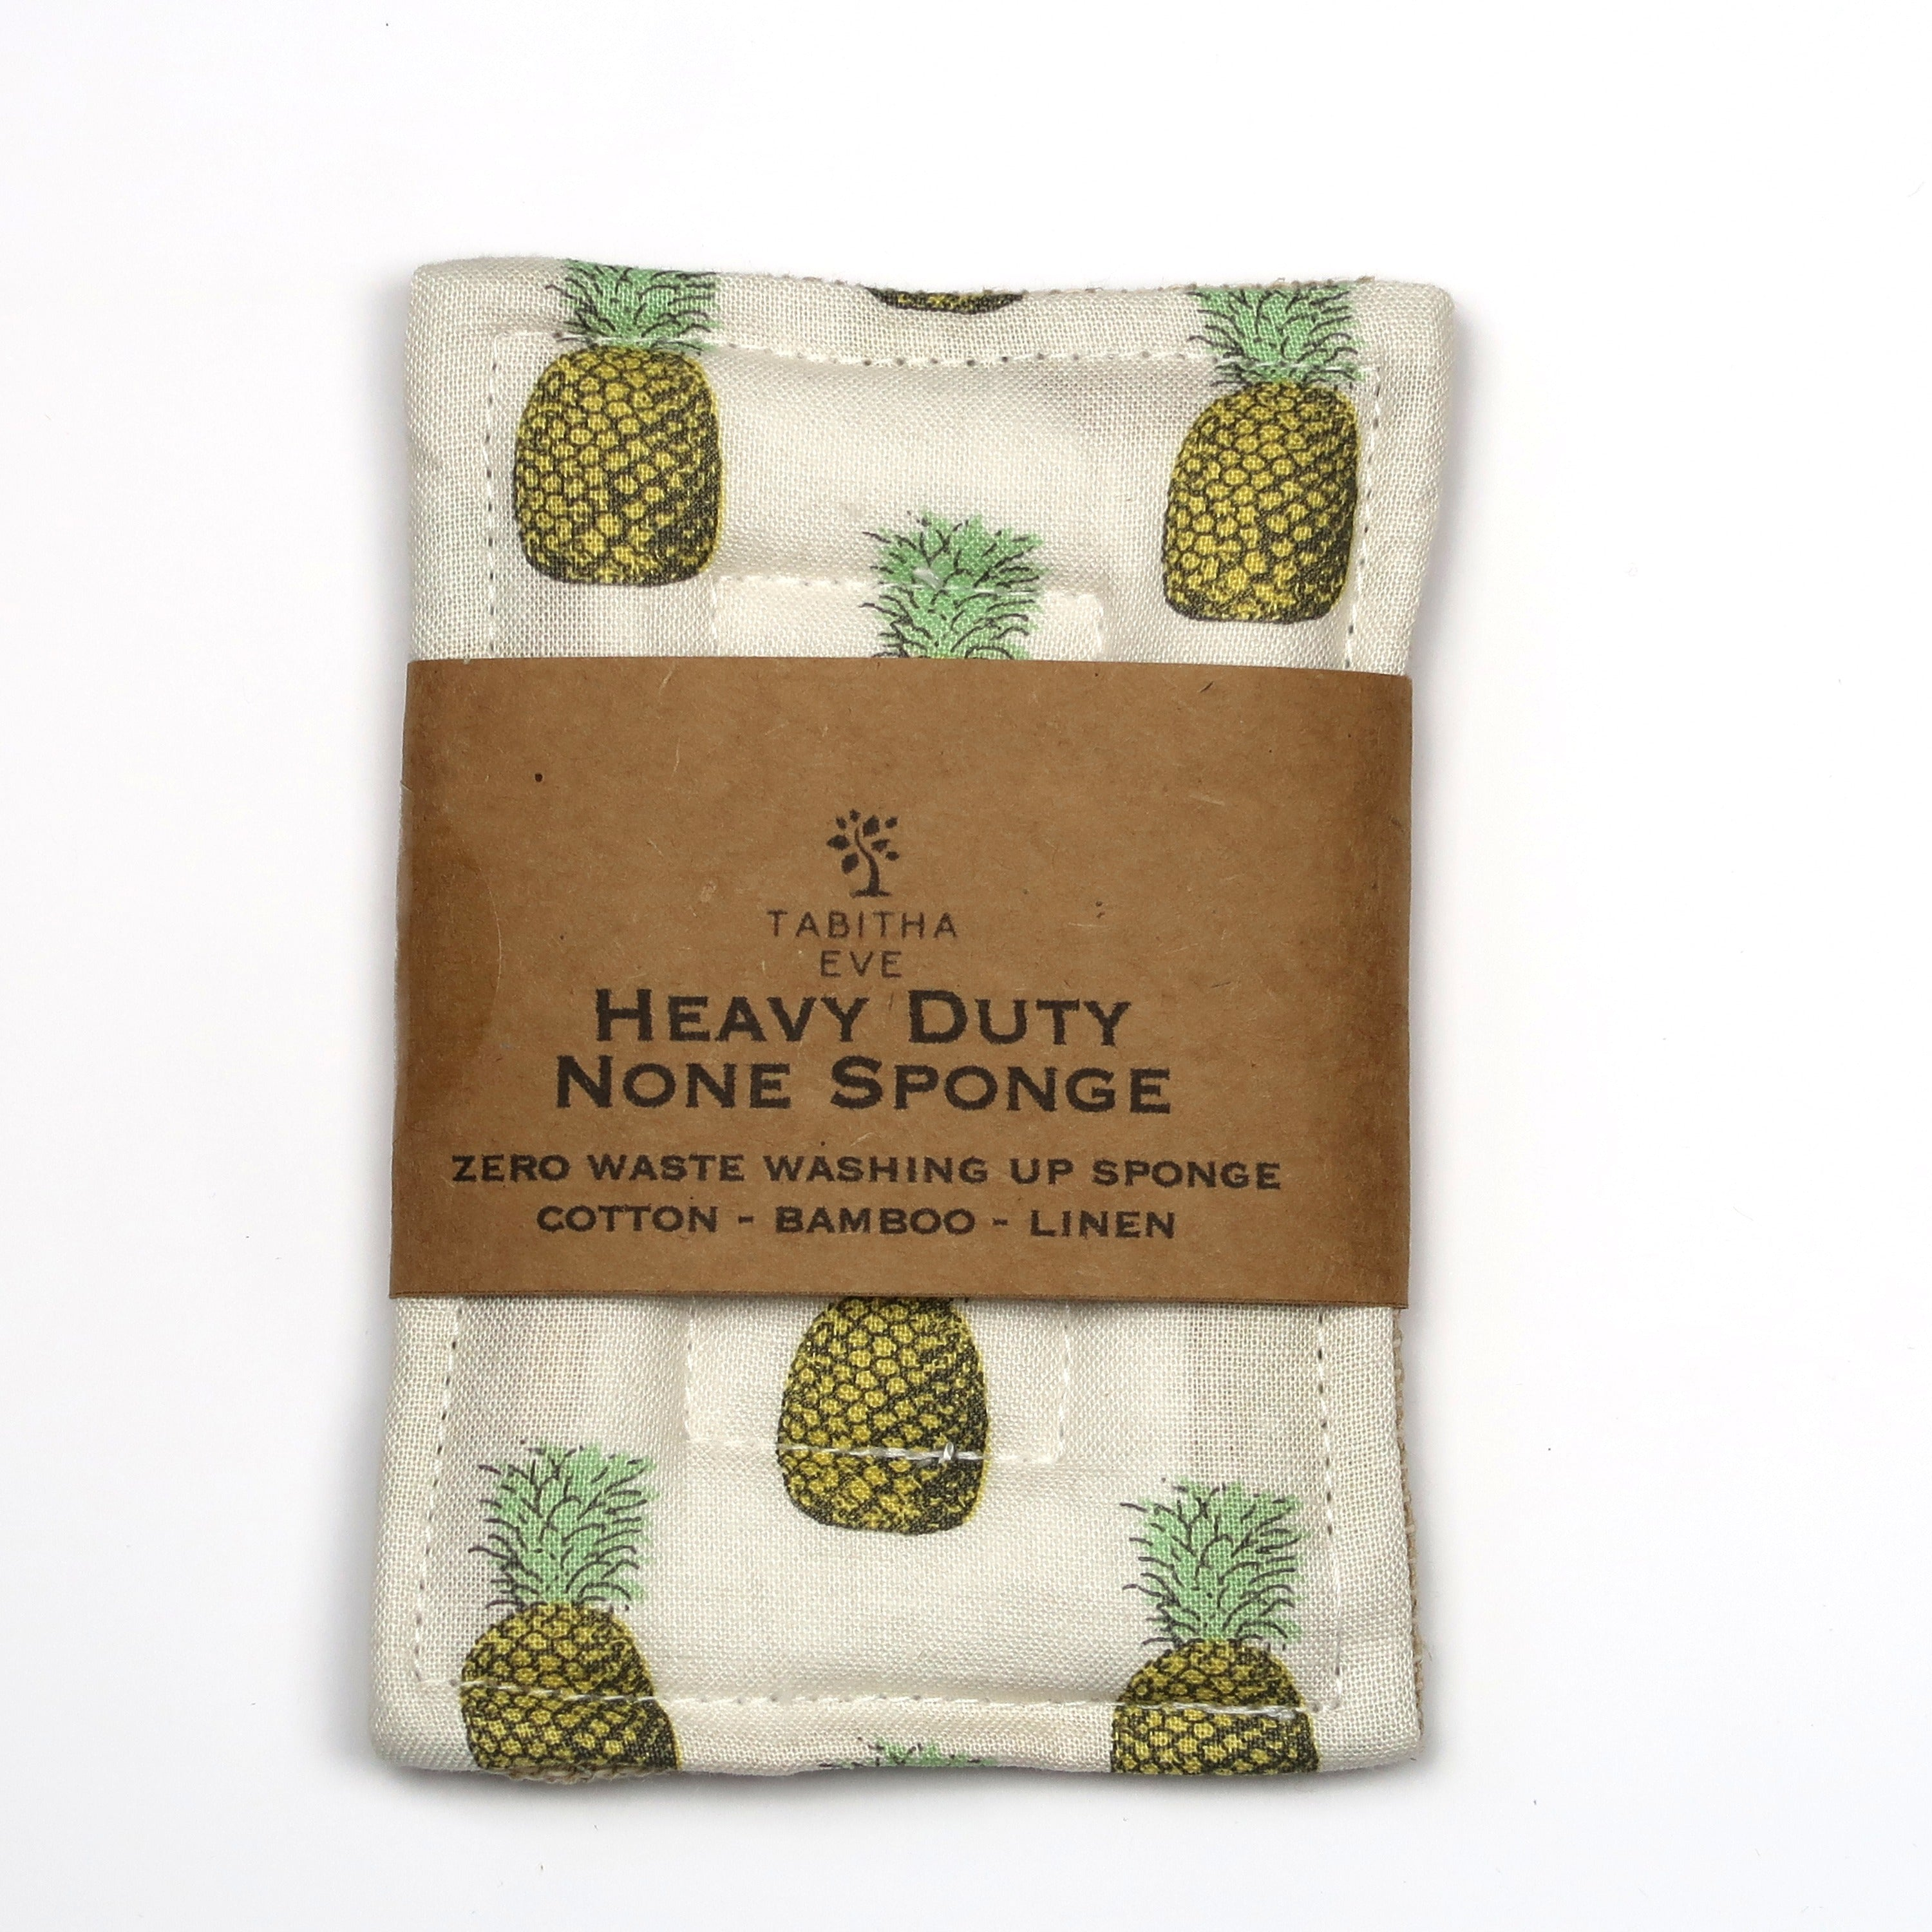 Tabitha Eve Co Heavy Duty None Sponge Pineapple Front View